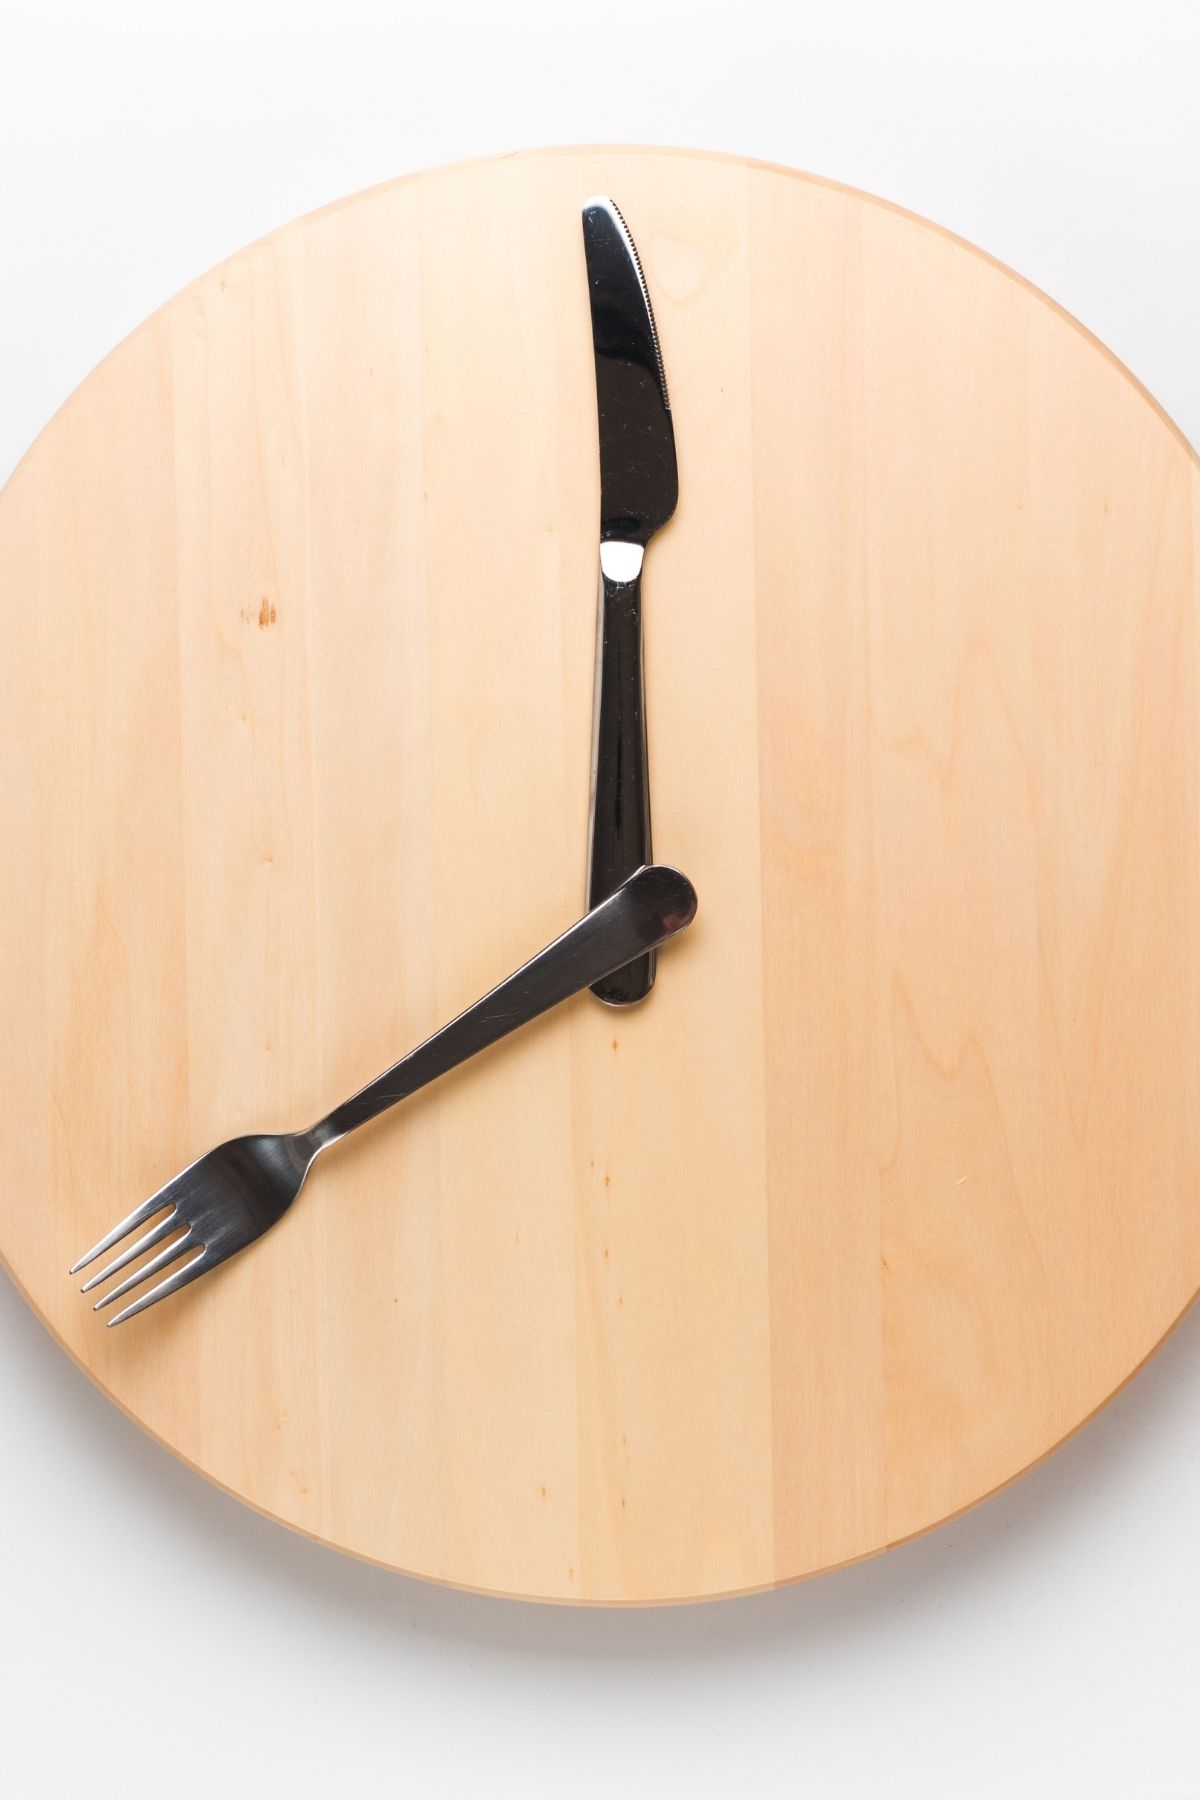 Image of clock with fork and spoon for a blog discussing intermittent fasting.